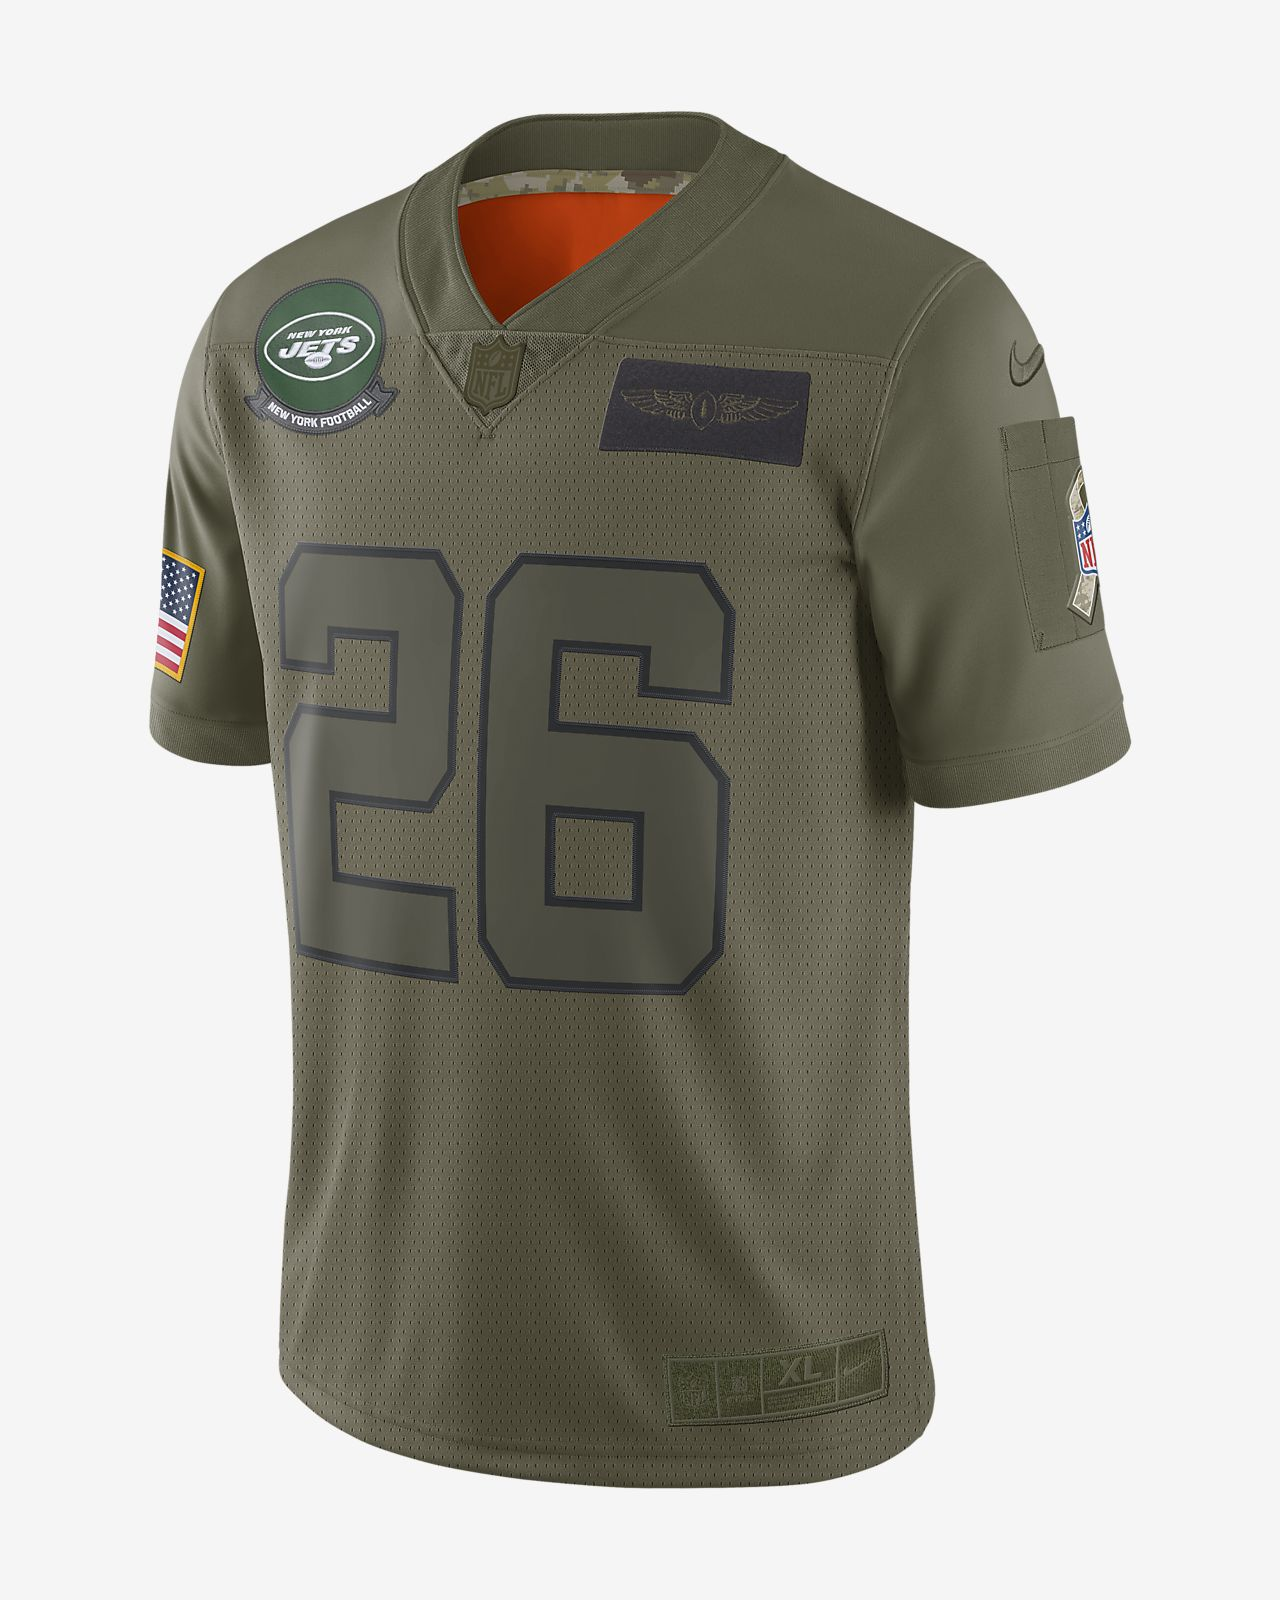 NFL New York Jets Limited Salute To Service (Le'Veon Bell) Men's Football Jersey